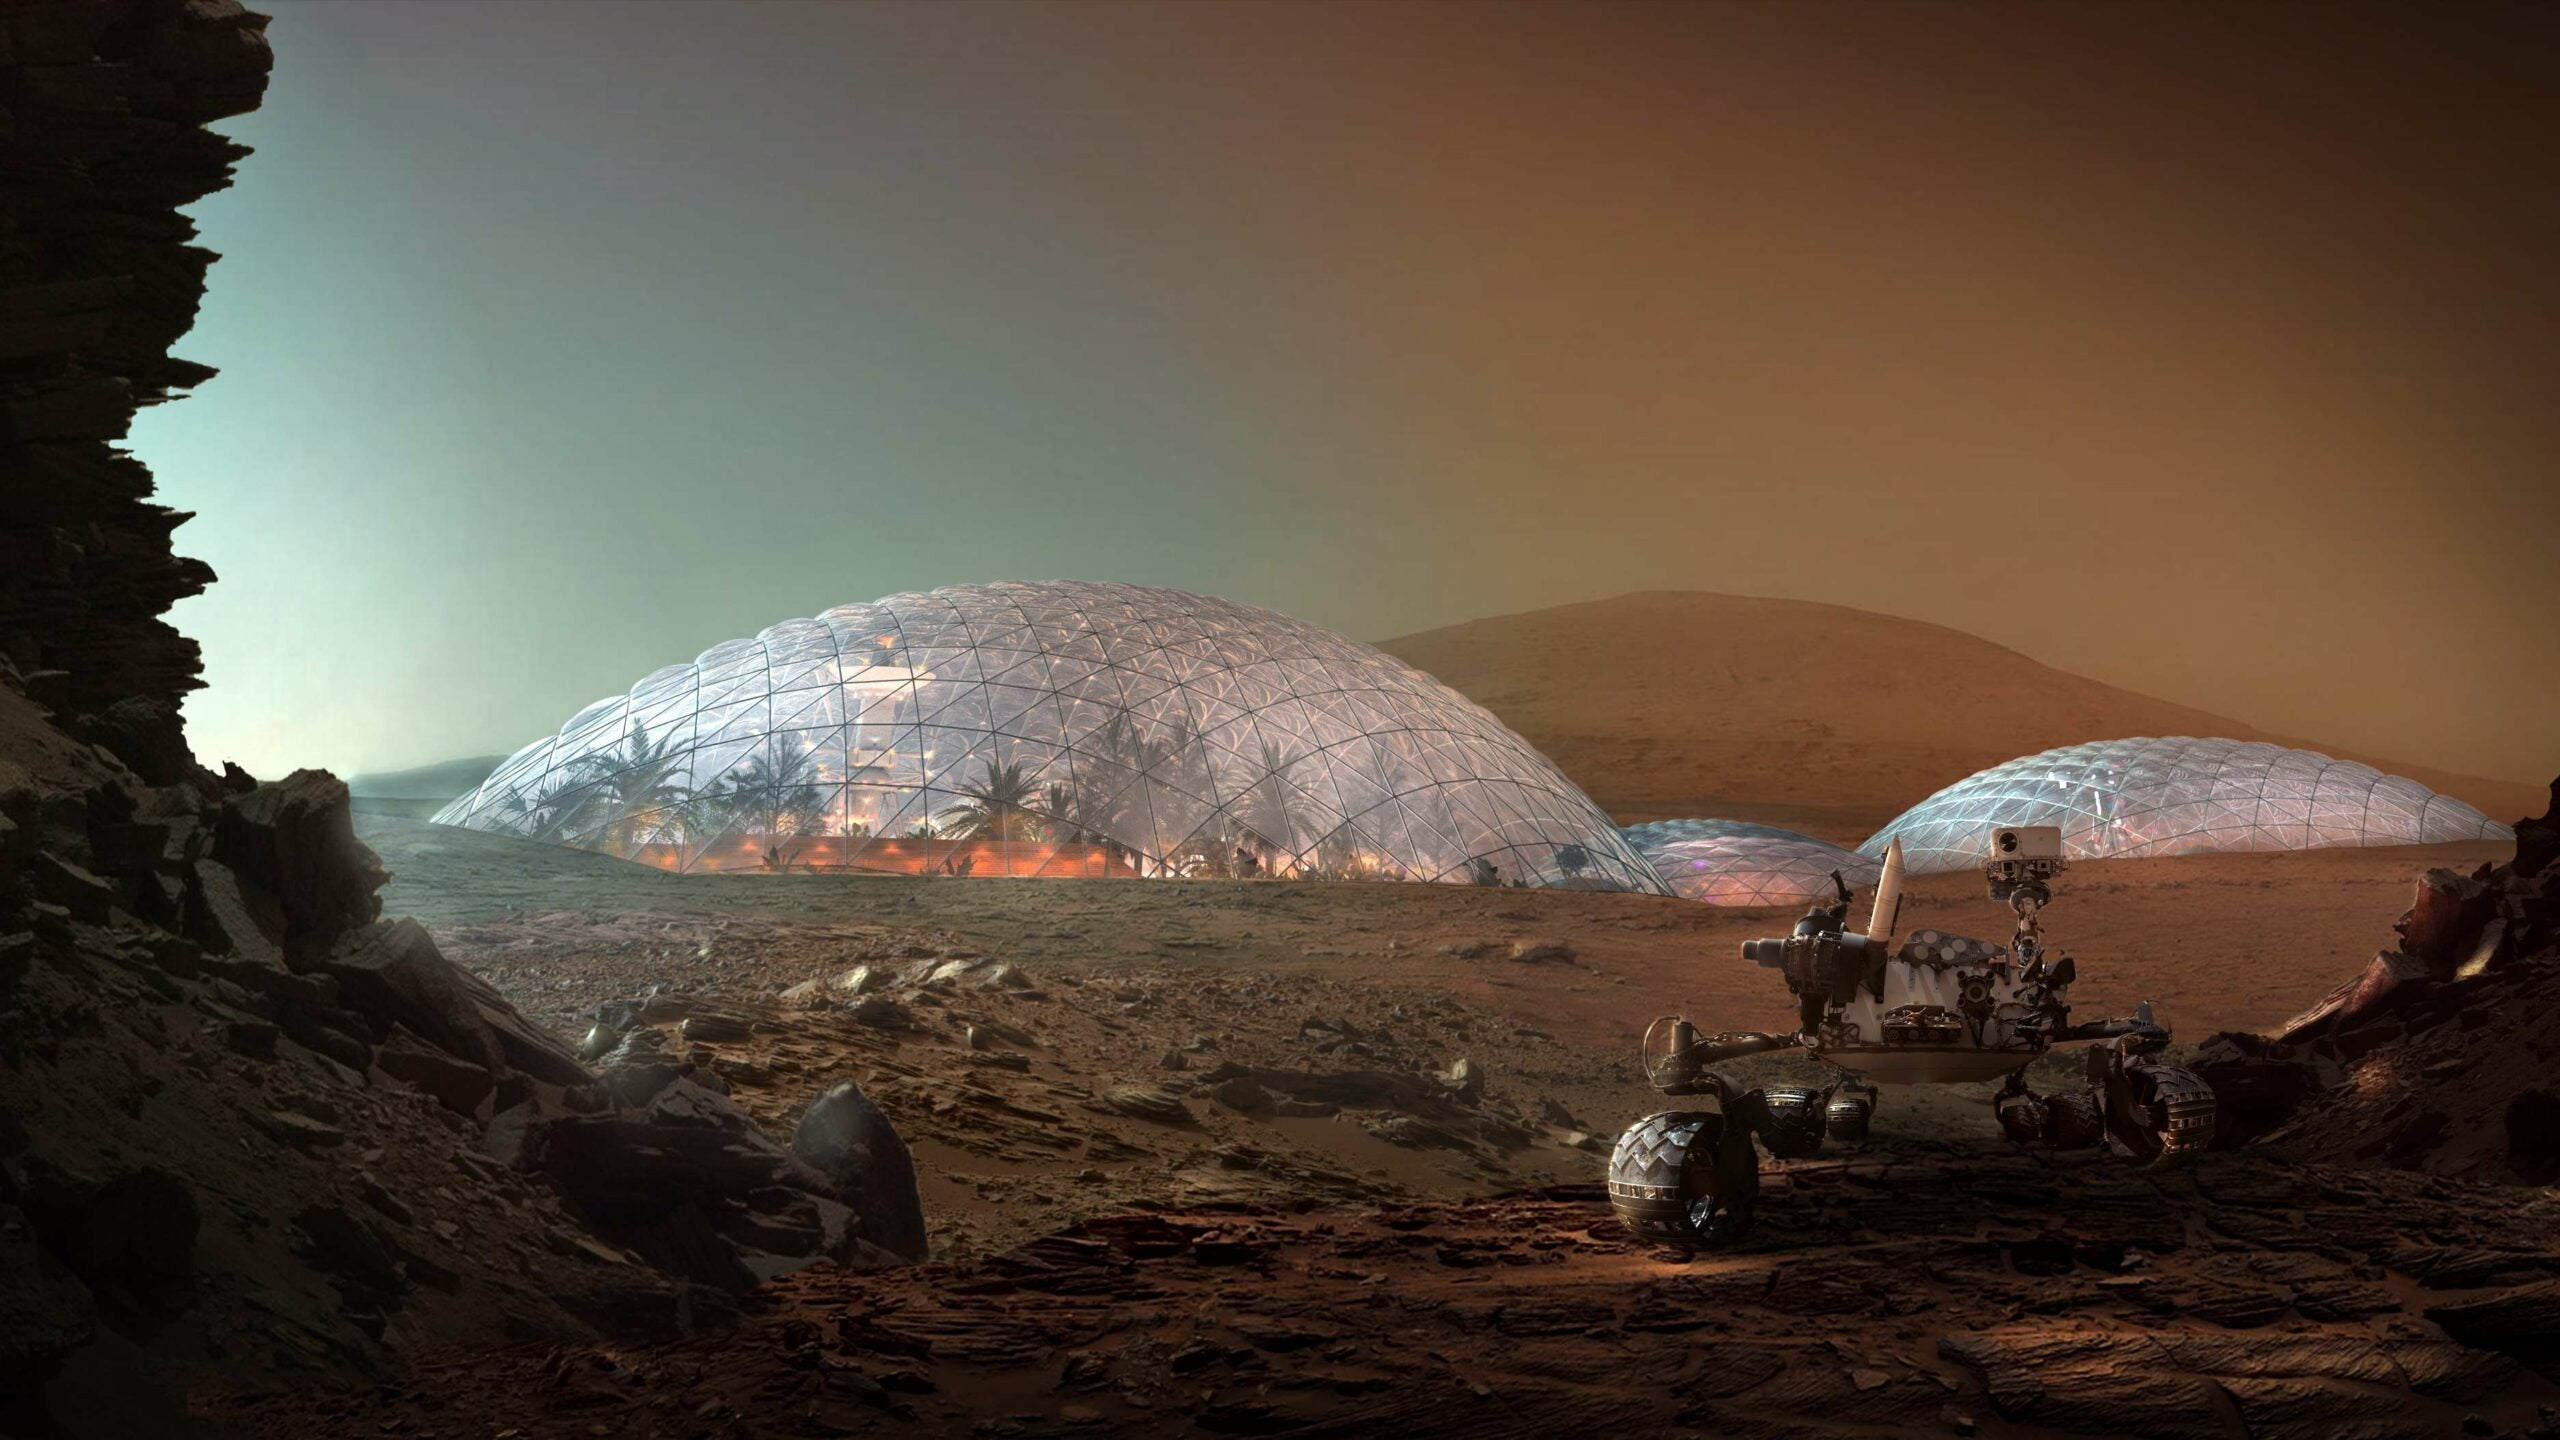 rendering of a martian city